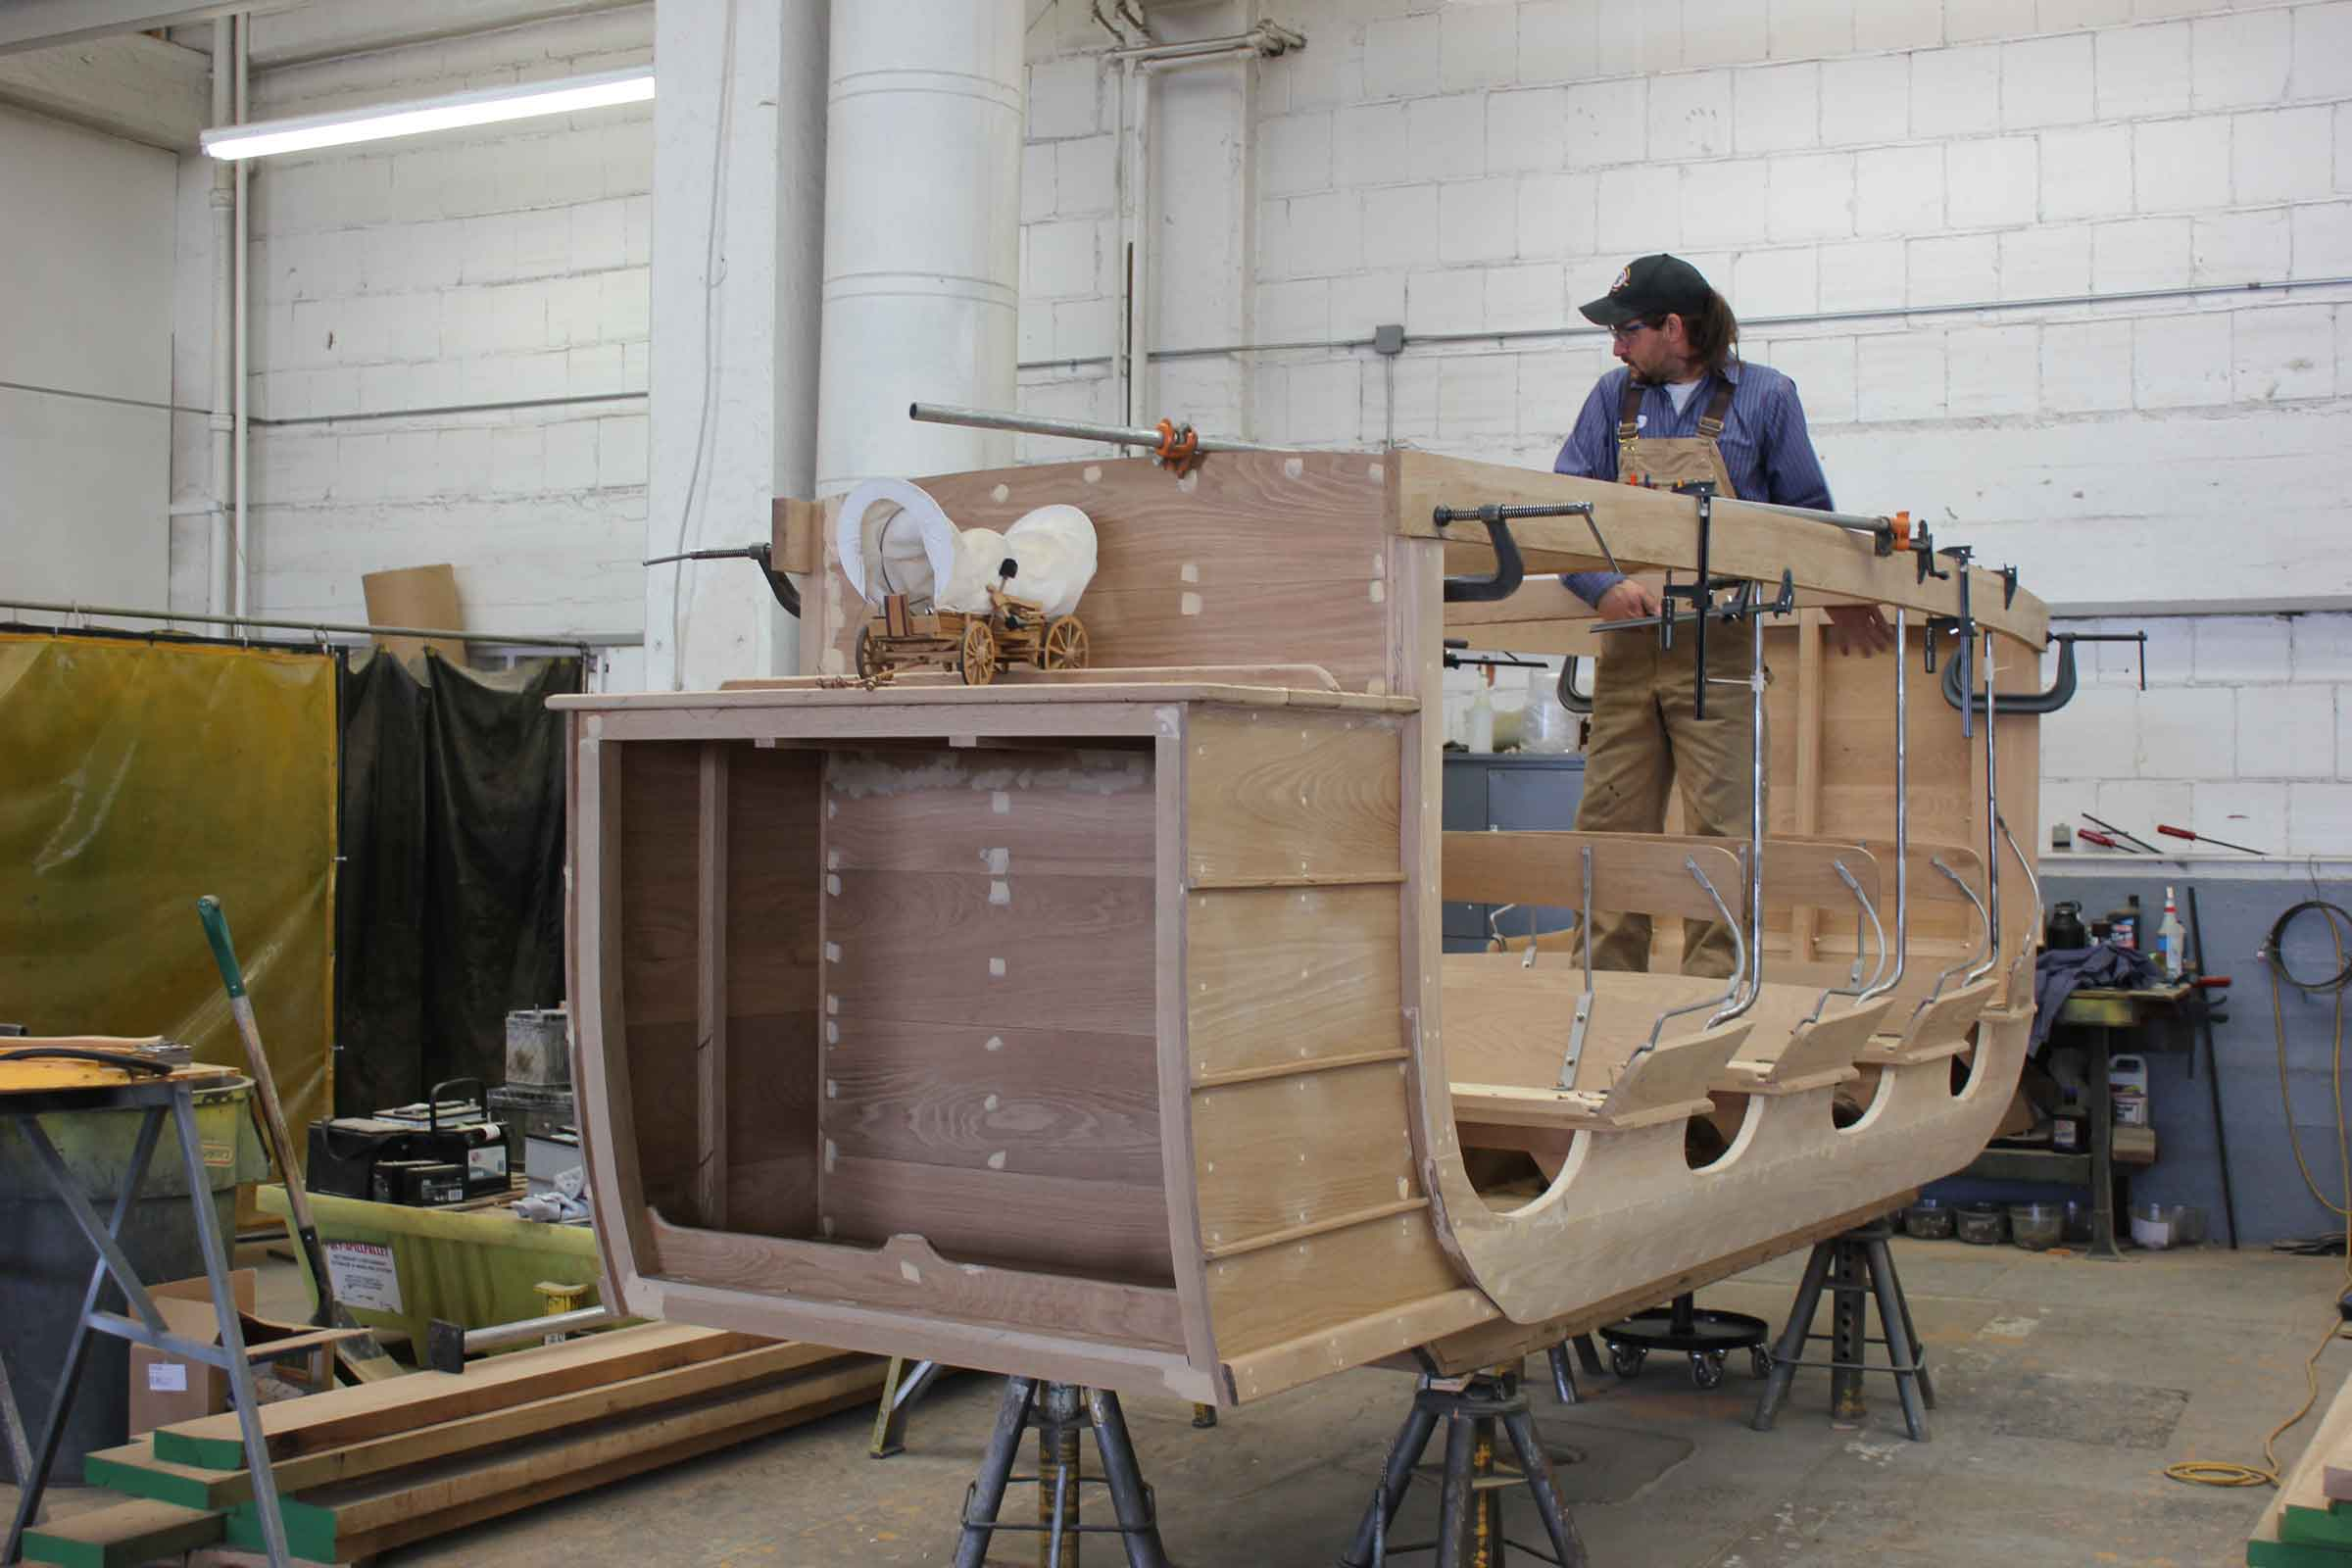 Stagecoach being built